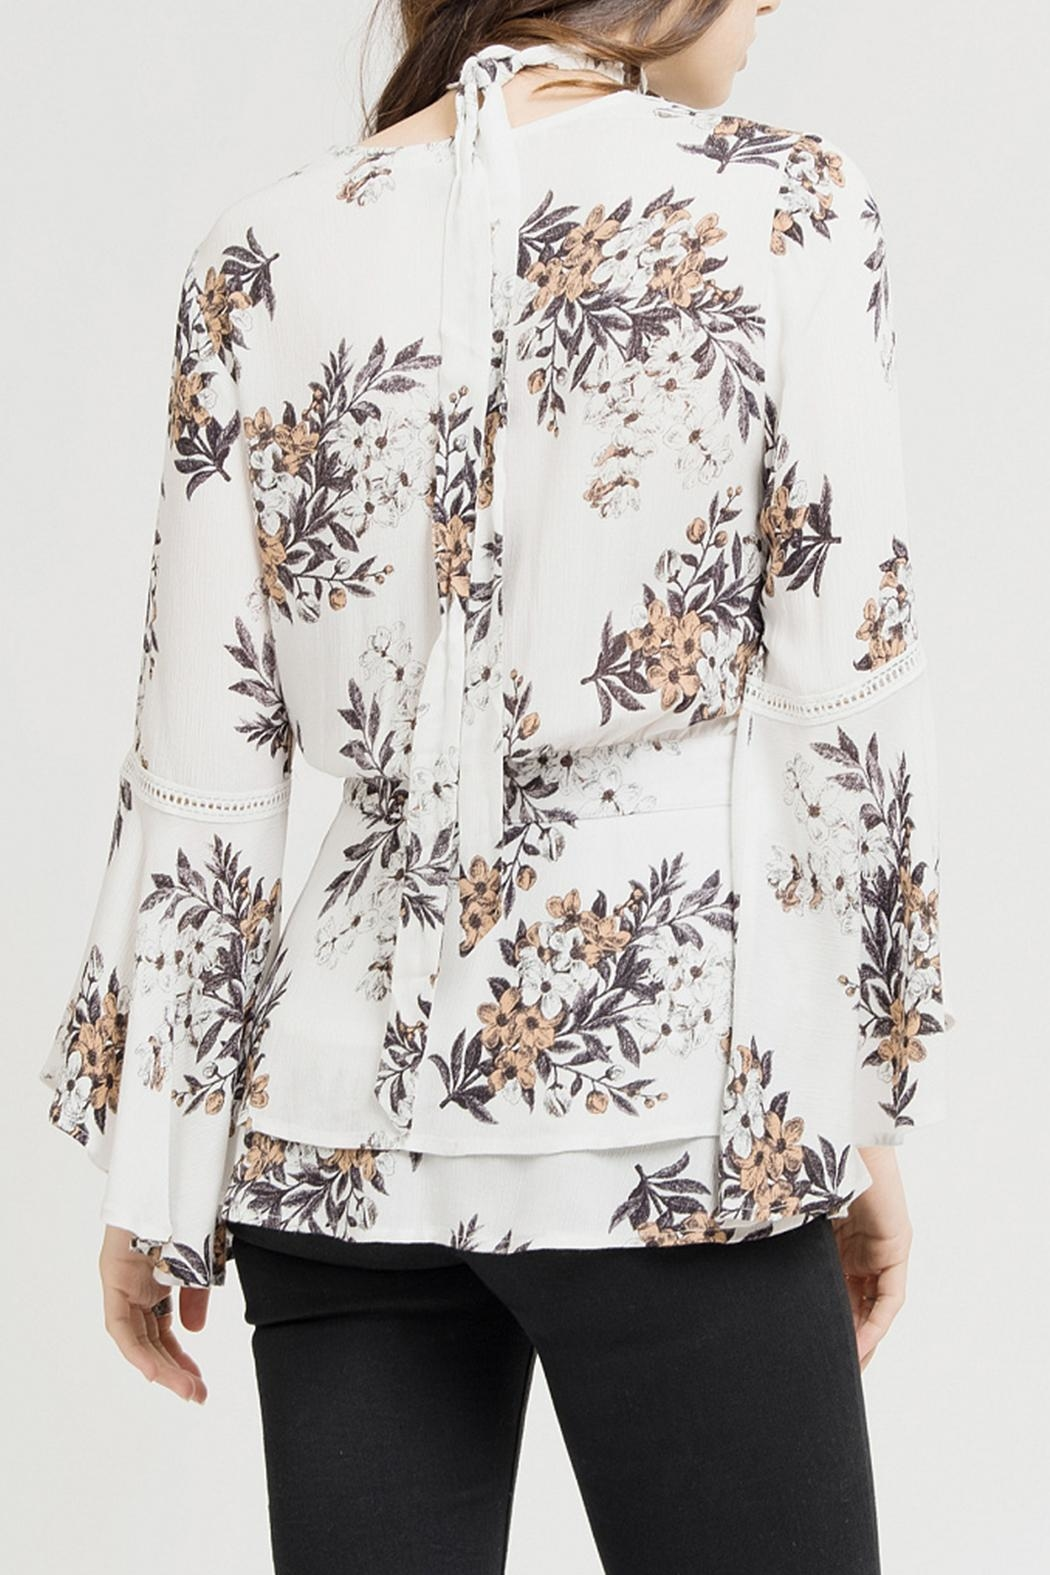 Blu Pepper White Floral Blouse - Front Full Image